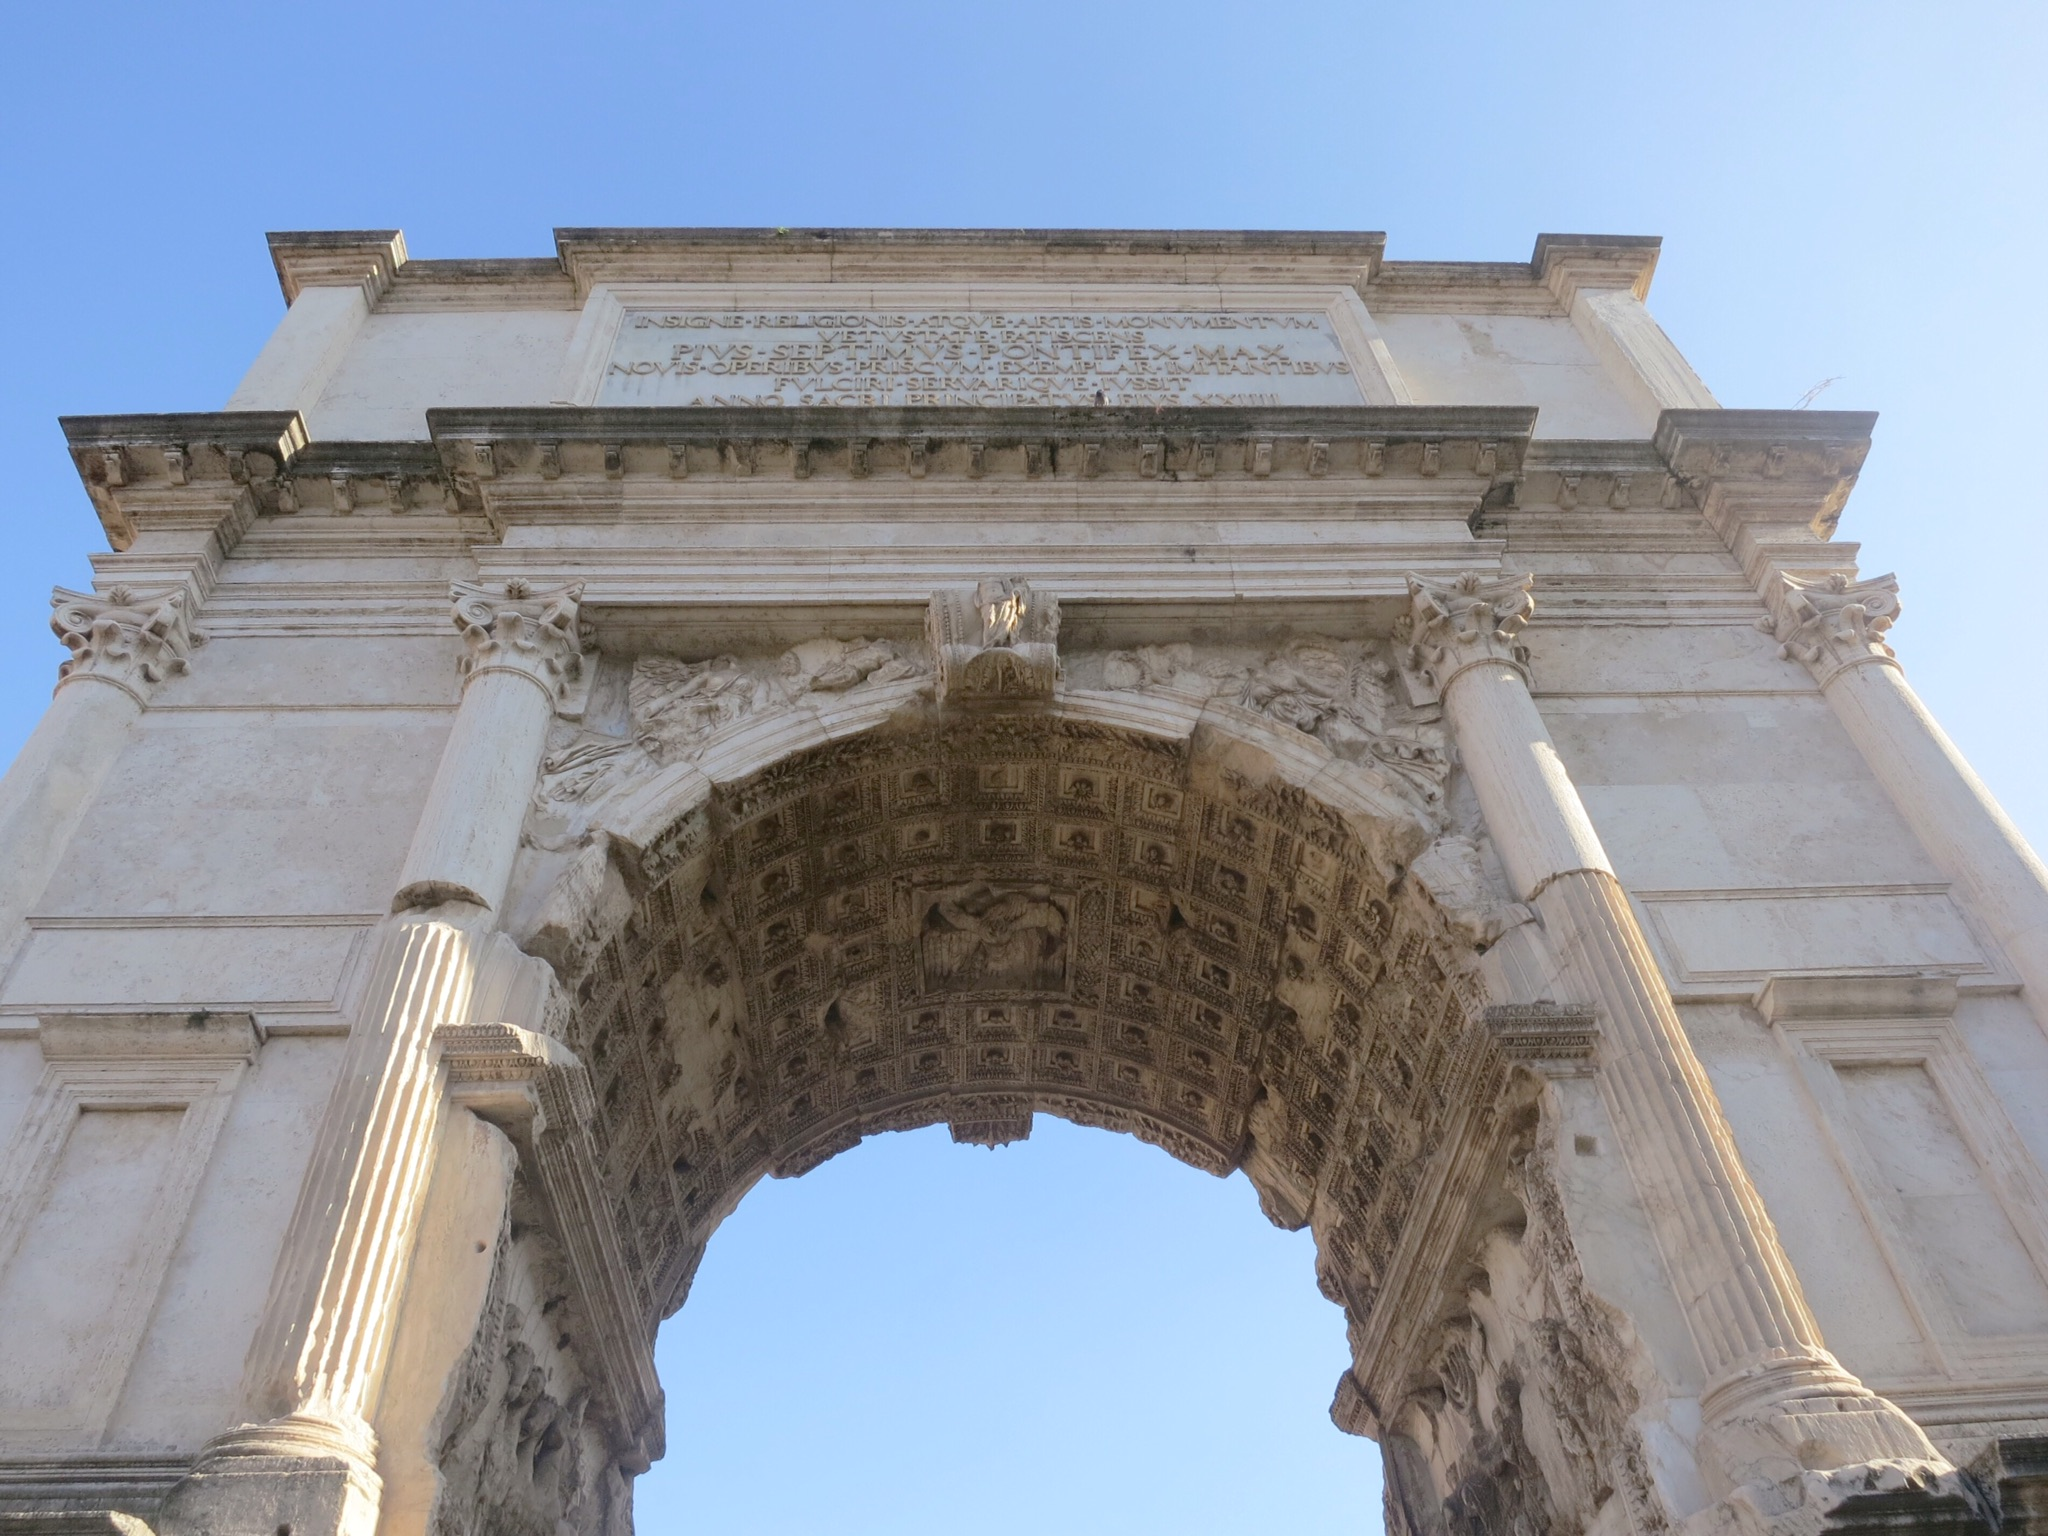 The Arch of Titus has detailed relief inside depicting the spoils of Jerusalem. Roman Forum, Rome, Italy.